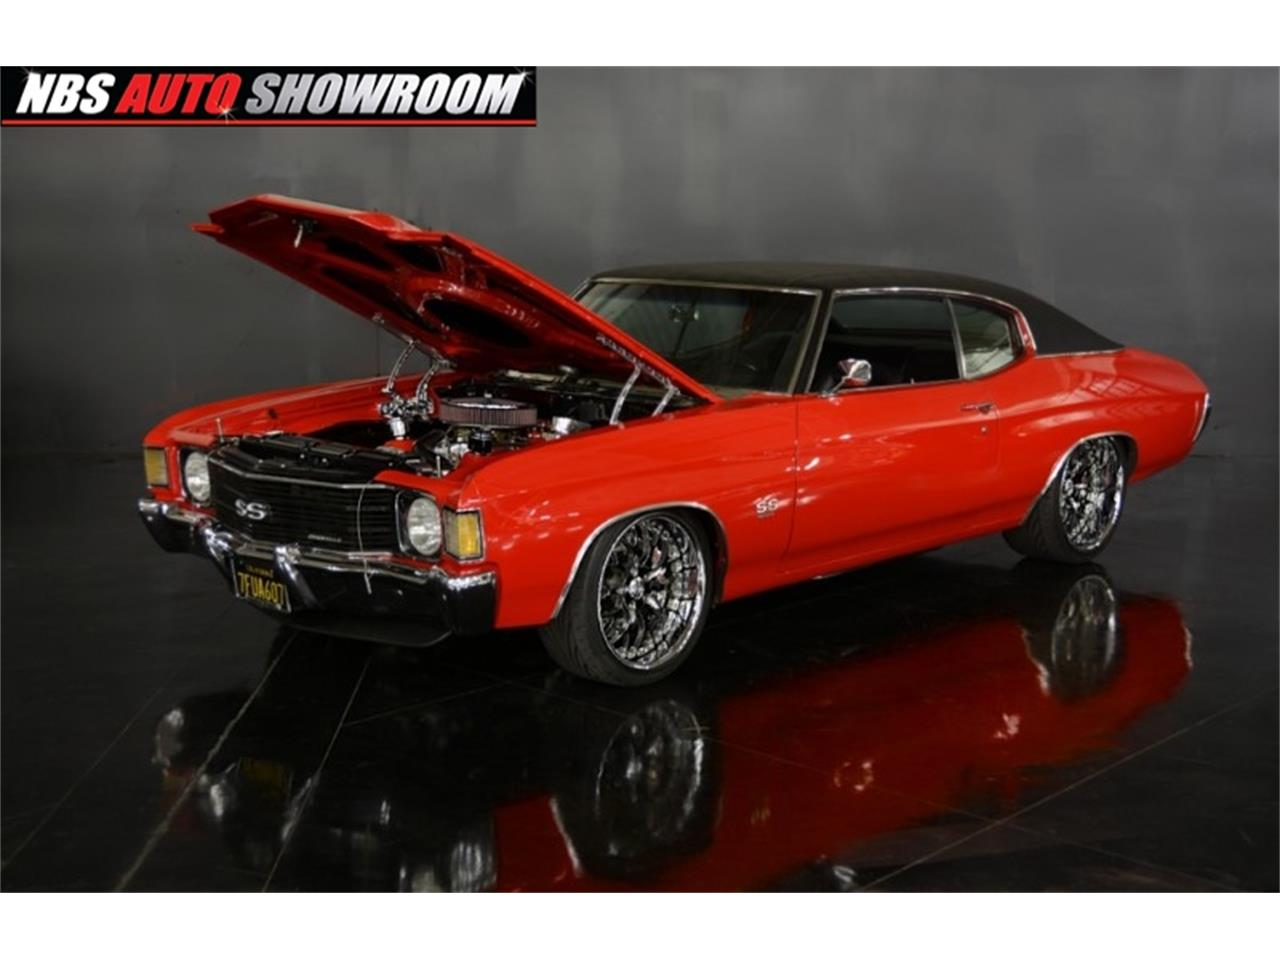 Large Picture of 1972 Chevelle located in California - $70,067.00 Offered by NBS Auto Showroom - KCKI